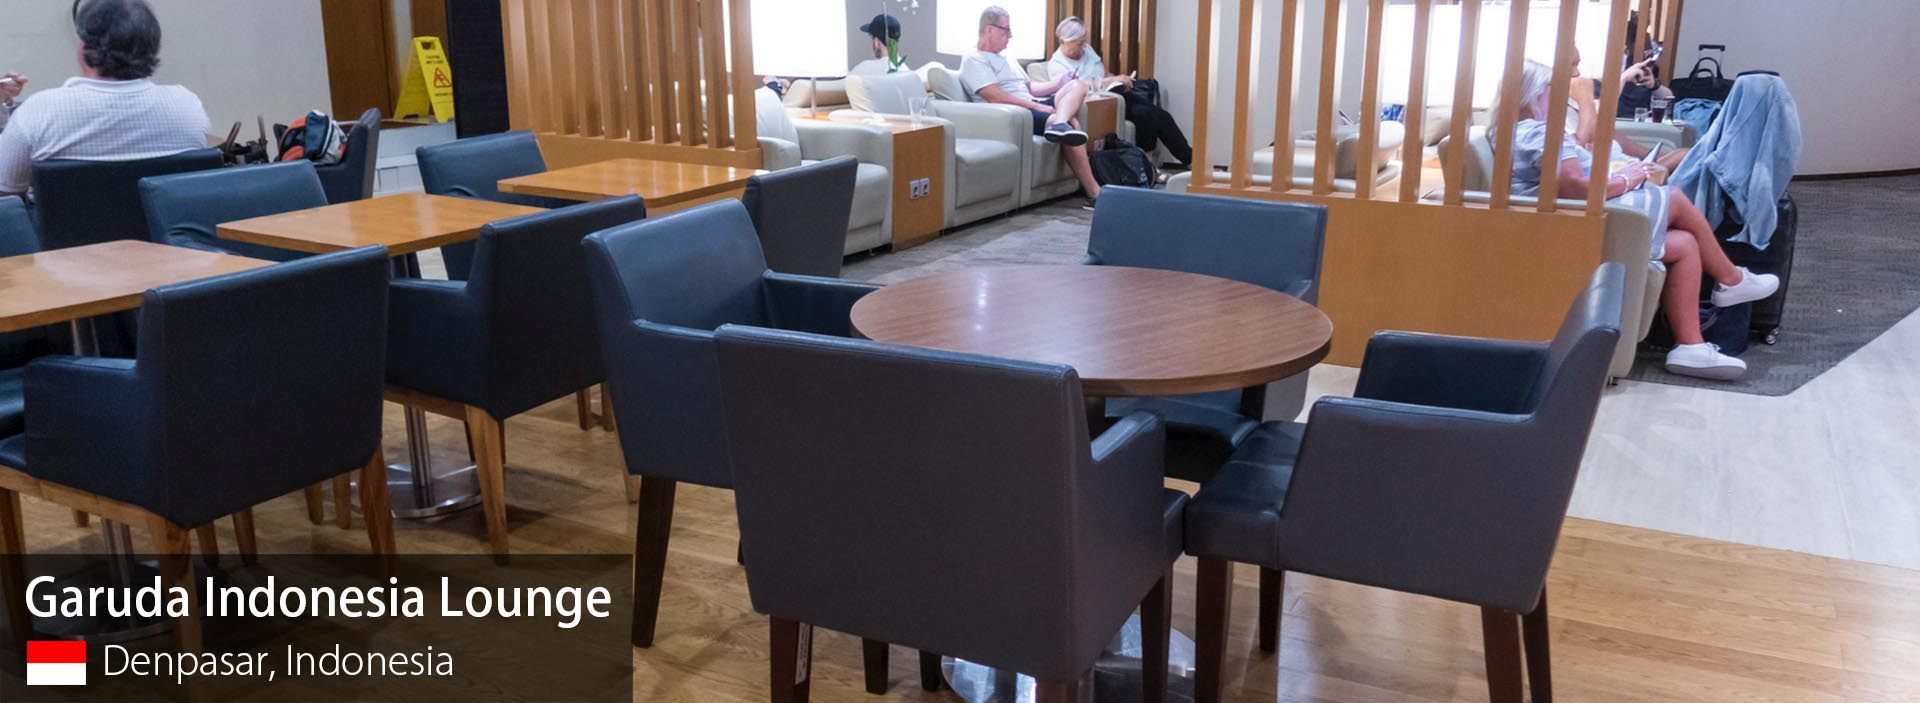 Review: Garuda Indonesia Business Class Lounge at Denpasar Bali Airport